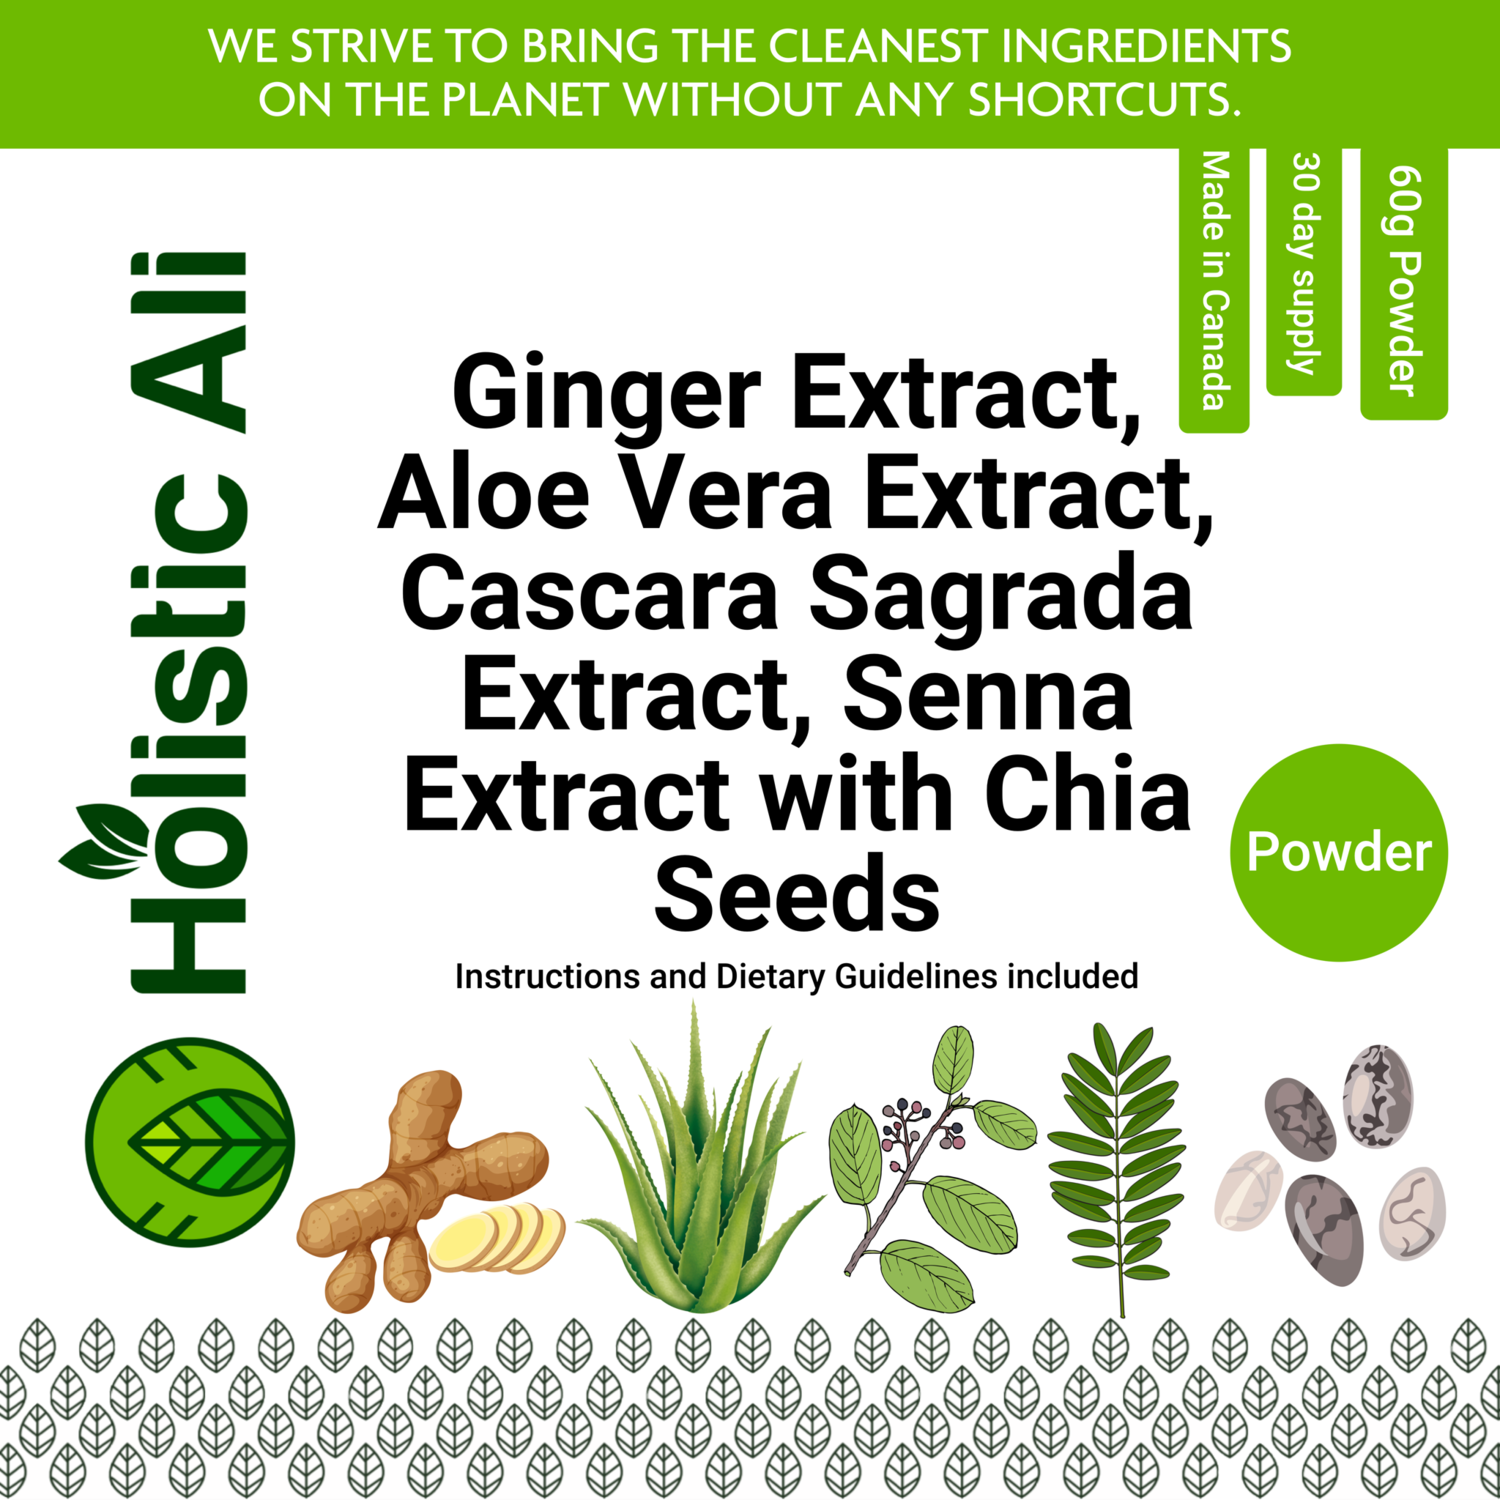 Ginger Extract, Aloe Vera Extract, Cascara Sagrada Extract, Senna Extract 60g + 226g Organic Fair Trade Chia Seeds FREE